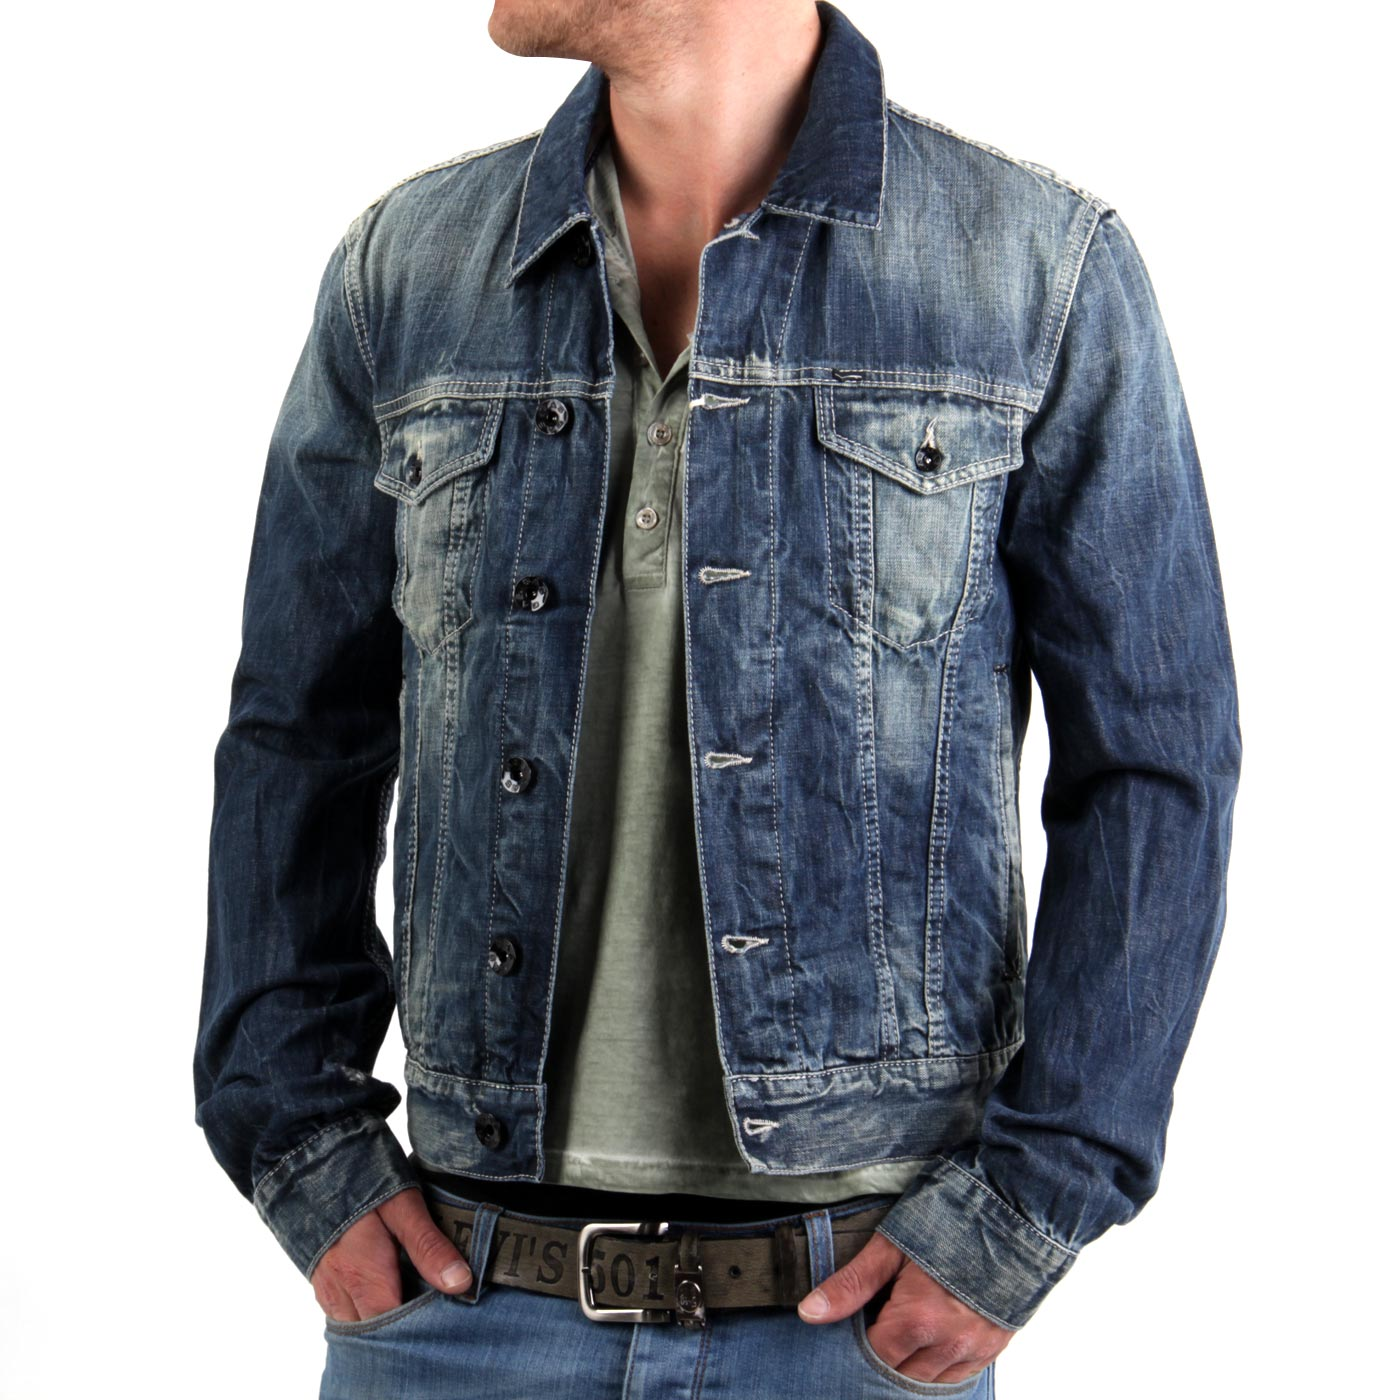 gas herren jeansjacke jacke oklahoma denim dark blue w668 ebay. Black Bedroom Furniture Sets. Home Design Ideas